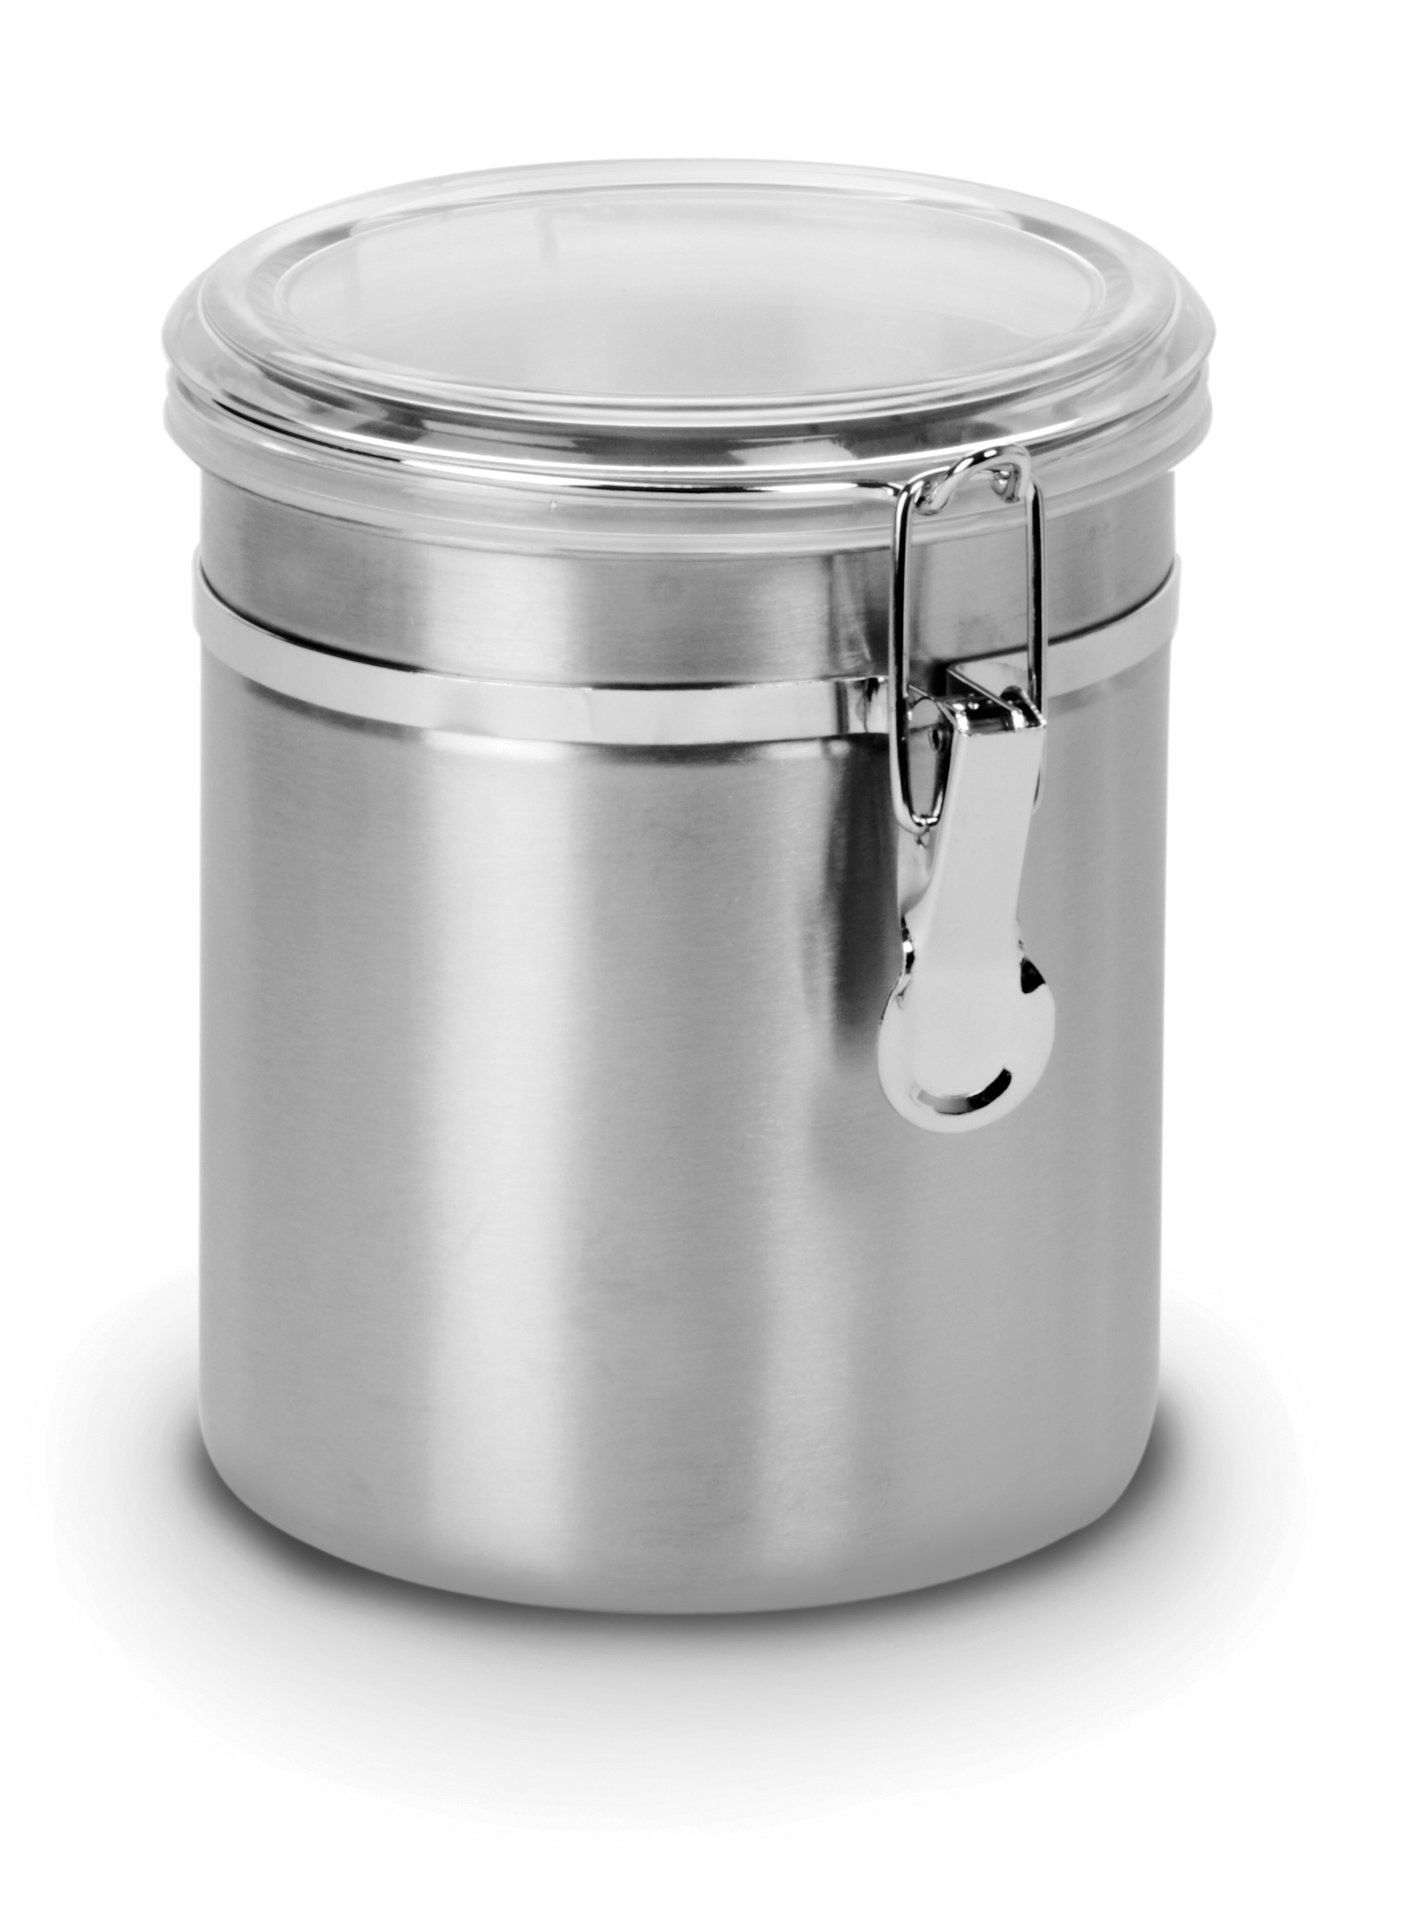 Anchor Hocking Round Stainless Steel Canister with Clear Acrylic Lid and Locking Clamp, 47 oz (Set of 4)